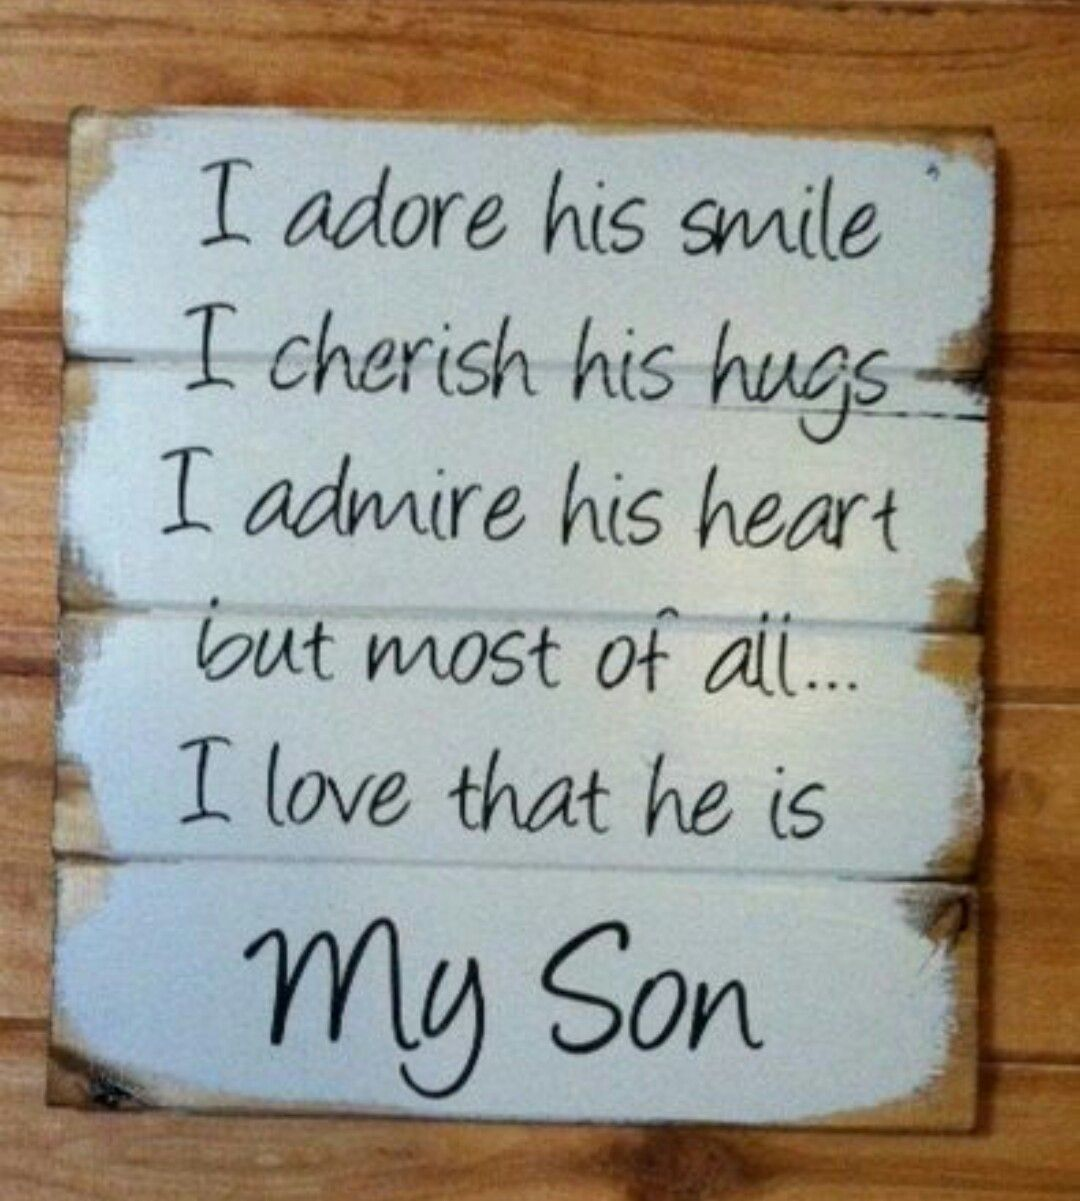 Mom And Son Quotes Pictures: Son Quotes, Family Quotes, Quotes